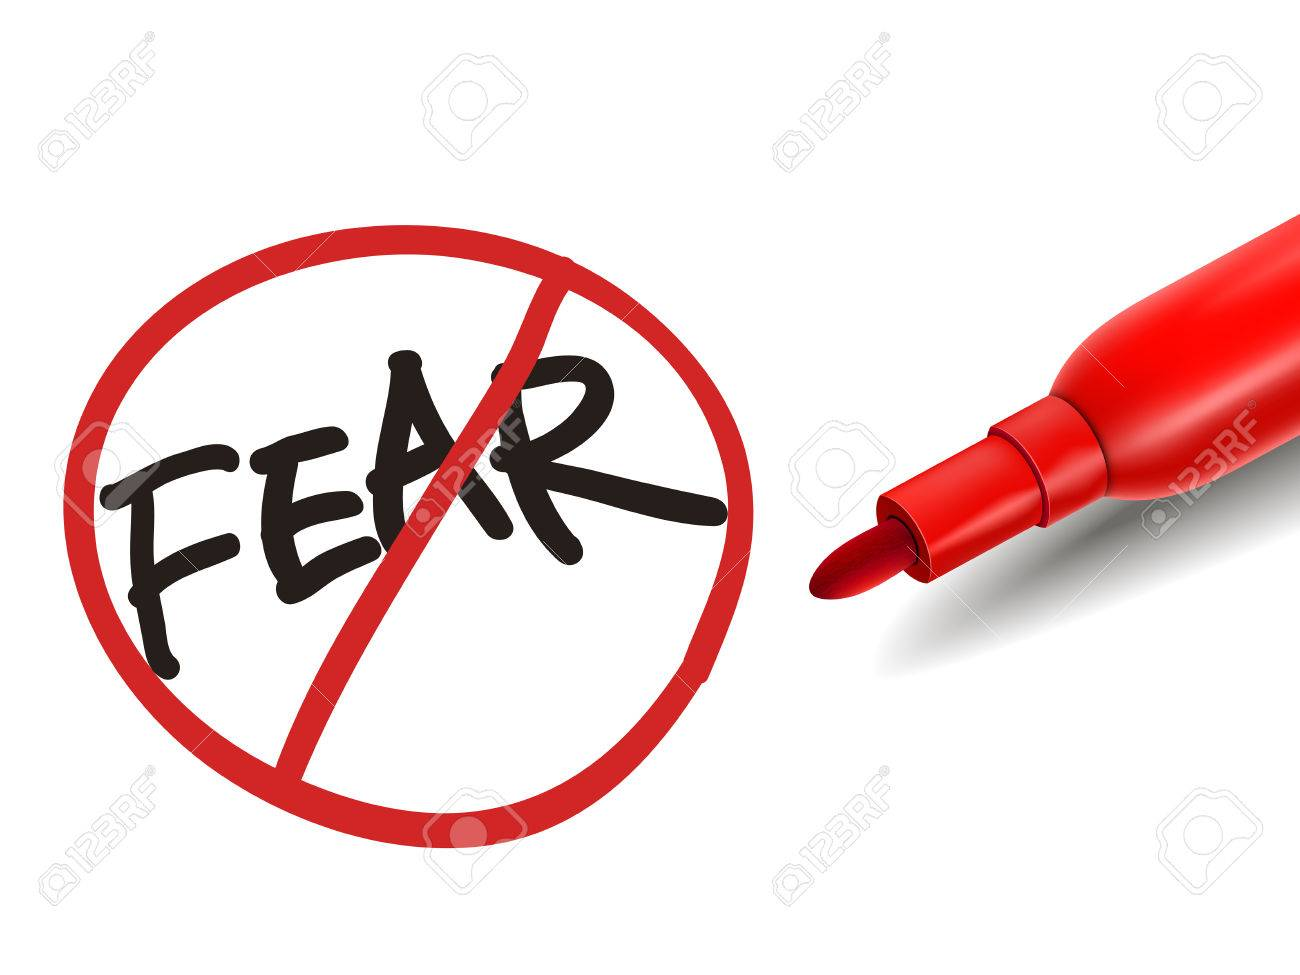 no fear word with a red marker over white - 31395202